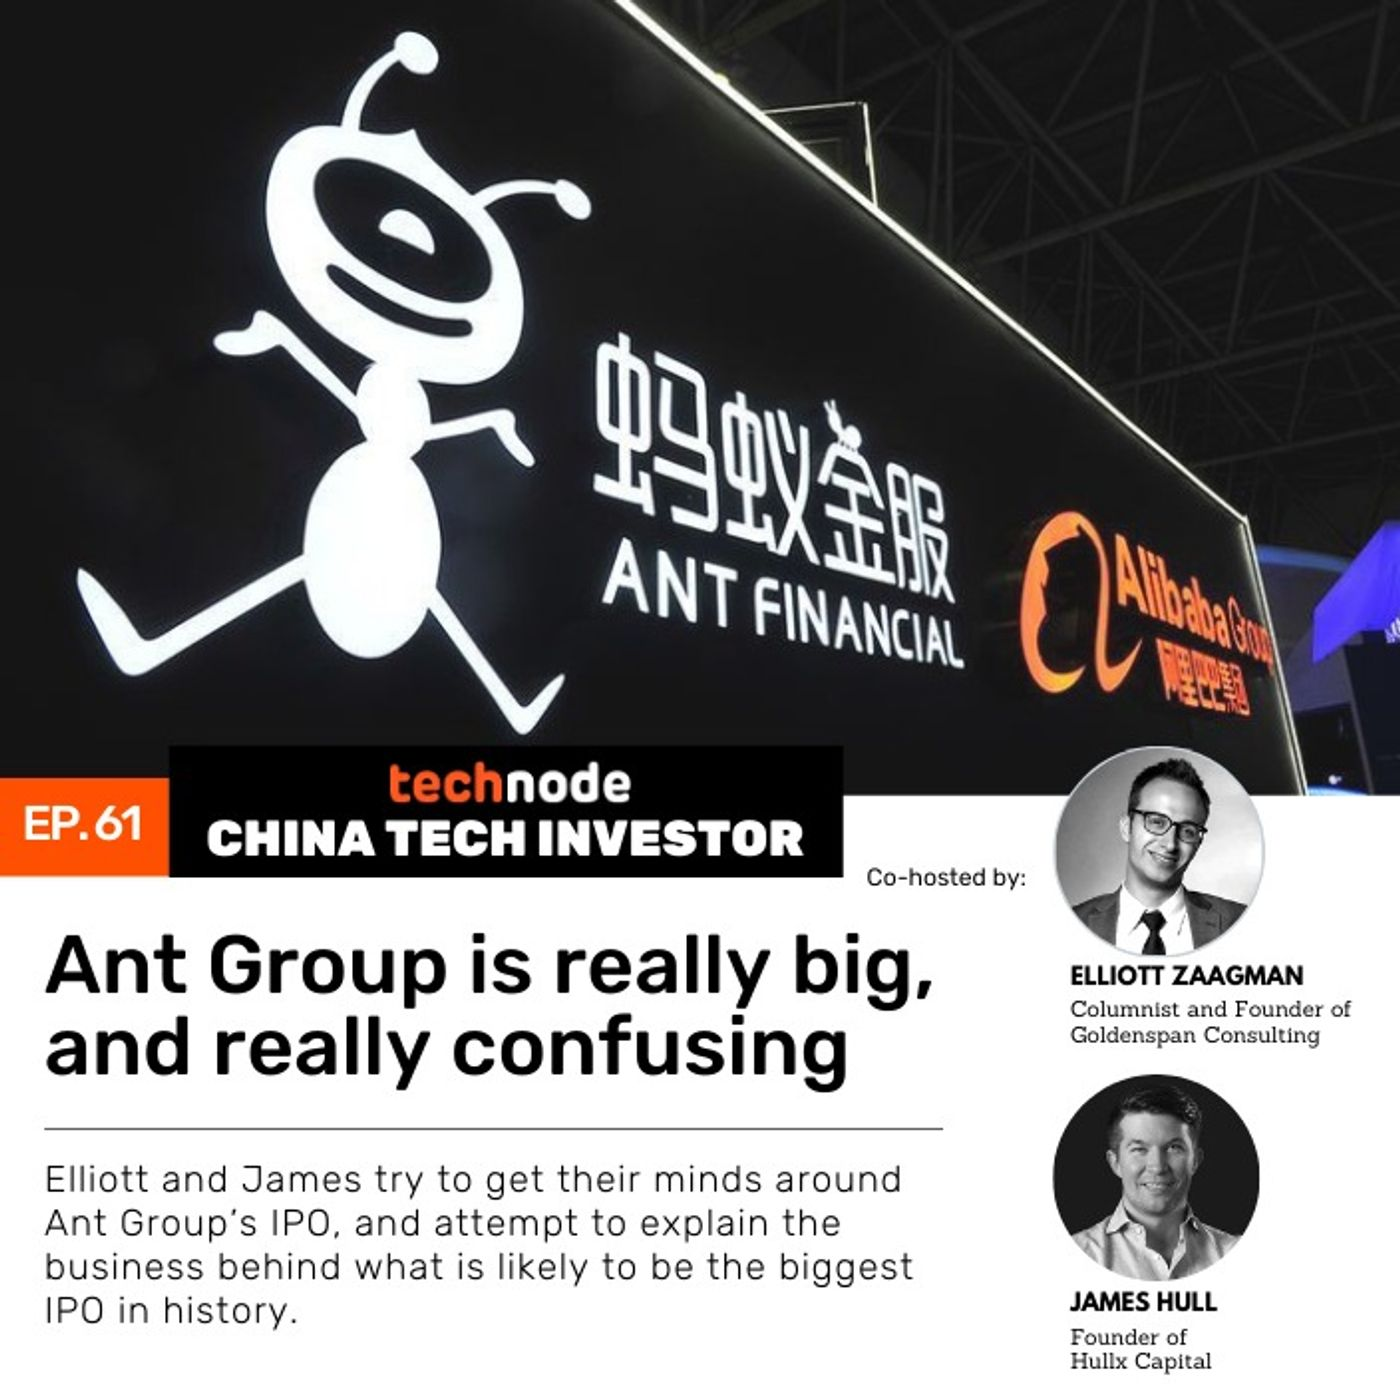 61: Ant Group is really big, and really confusing